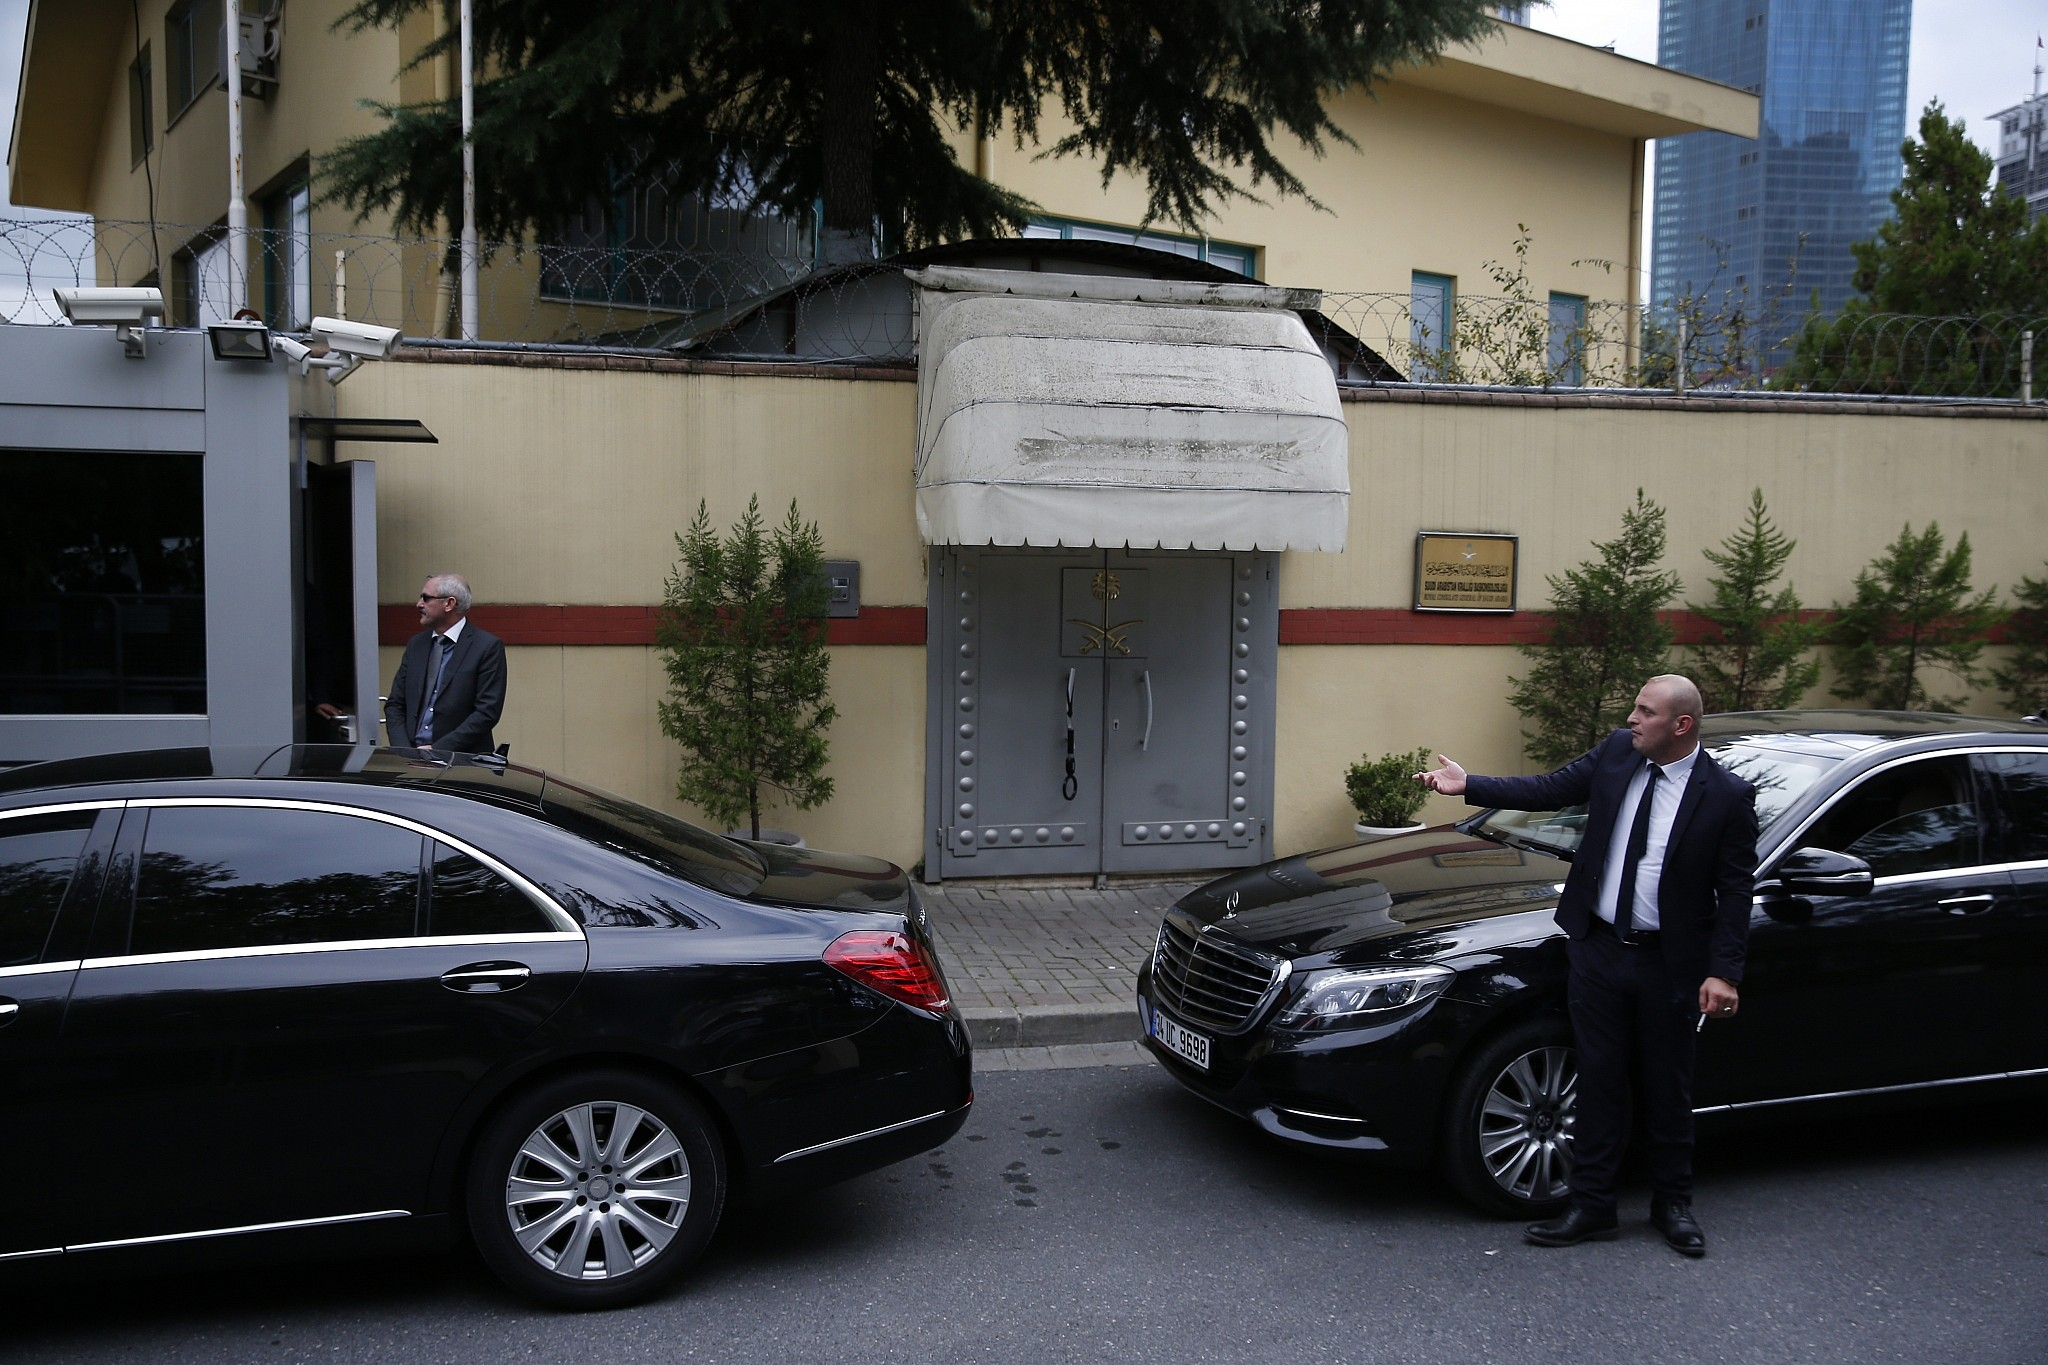 Turkish newspaper identifies 15 Saudis allegedly involved in Jamal Khashoggi's disappearance